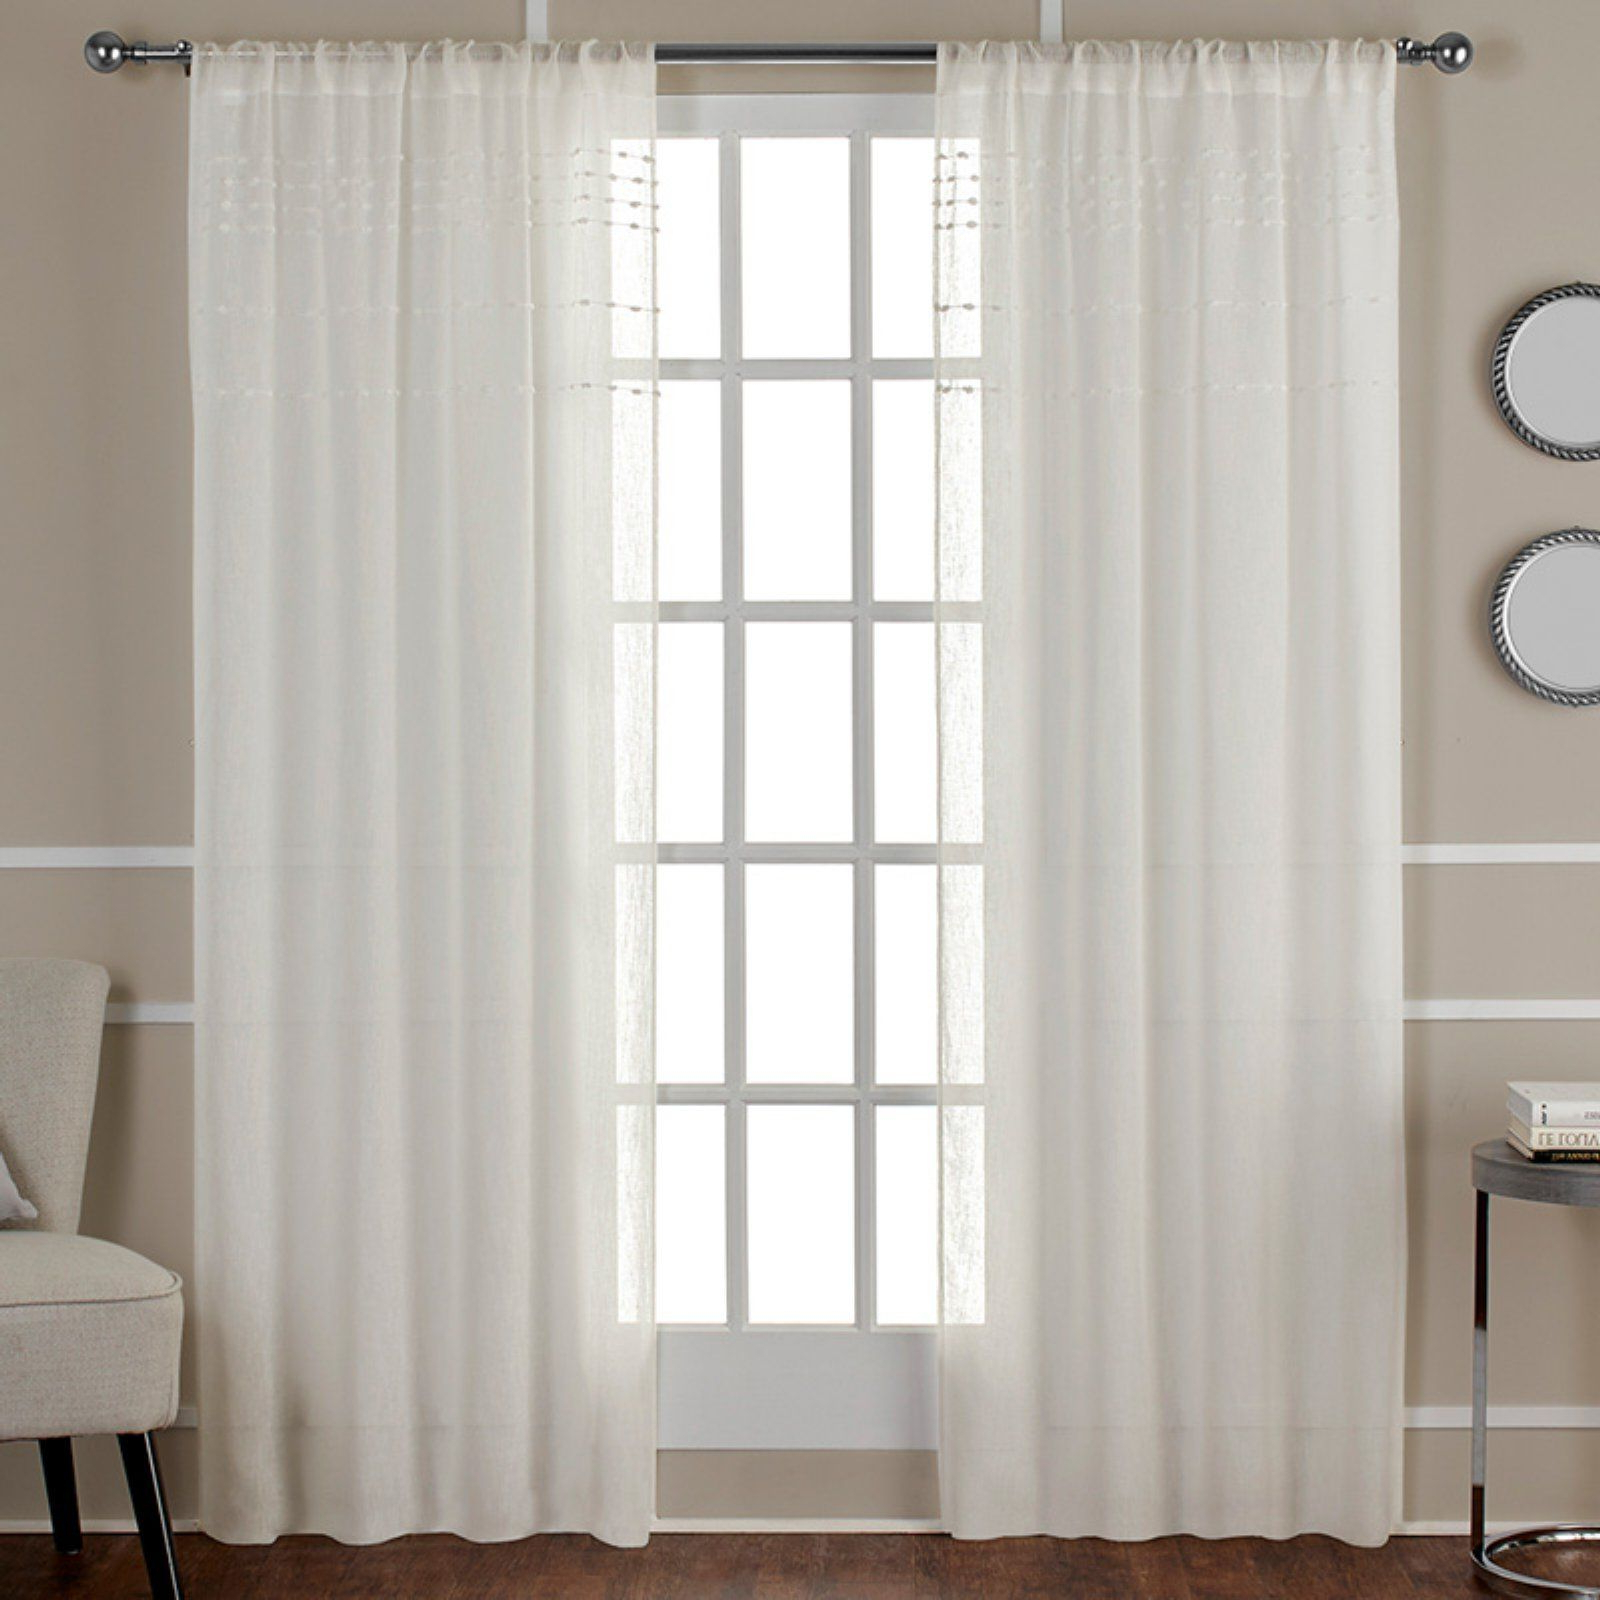 Widely Used Belgian Sheer Window Curtain Panel Pairs With Rod Pocket Within Exclusive Home Davos Puff Embellished Belgian Sheer Window (View 20 of 20)